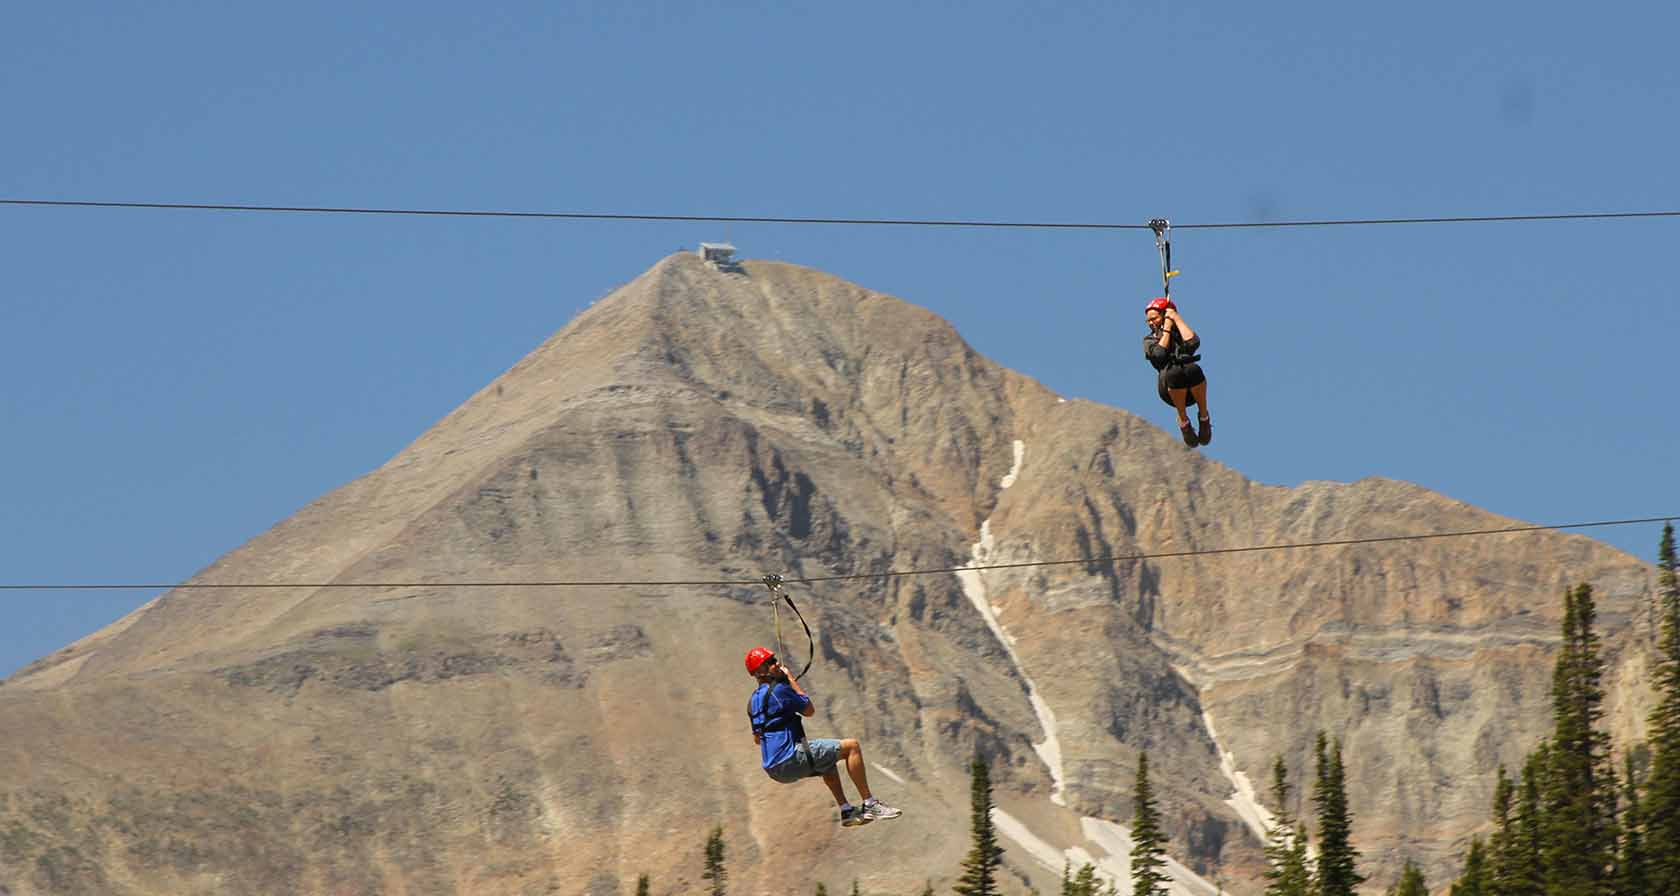 Big Sky Resort Zipline Tours profile image